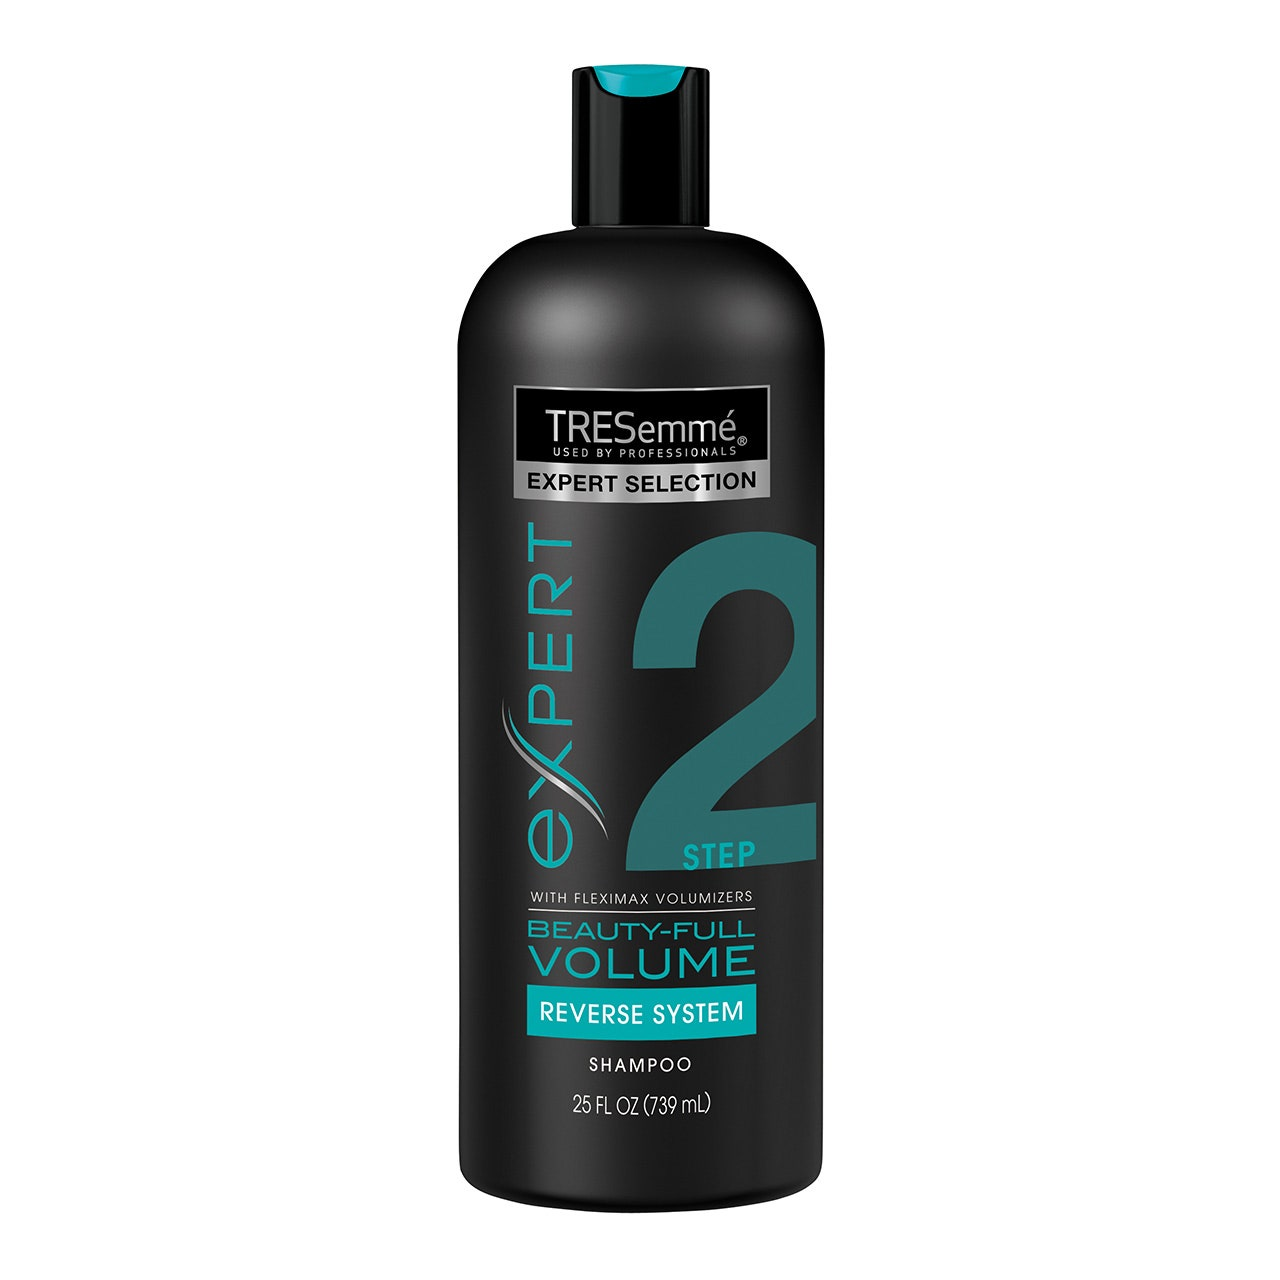 tresemme volume and fullness shampoo review